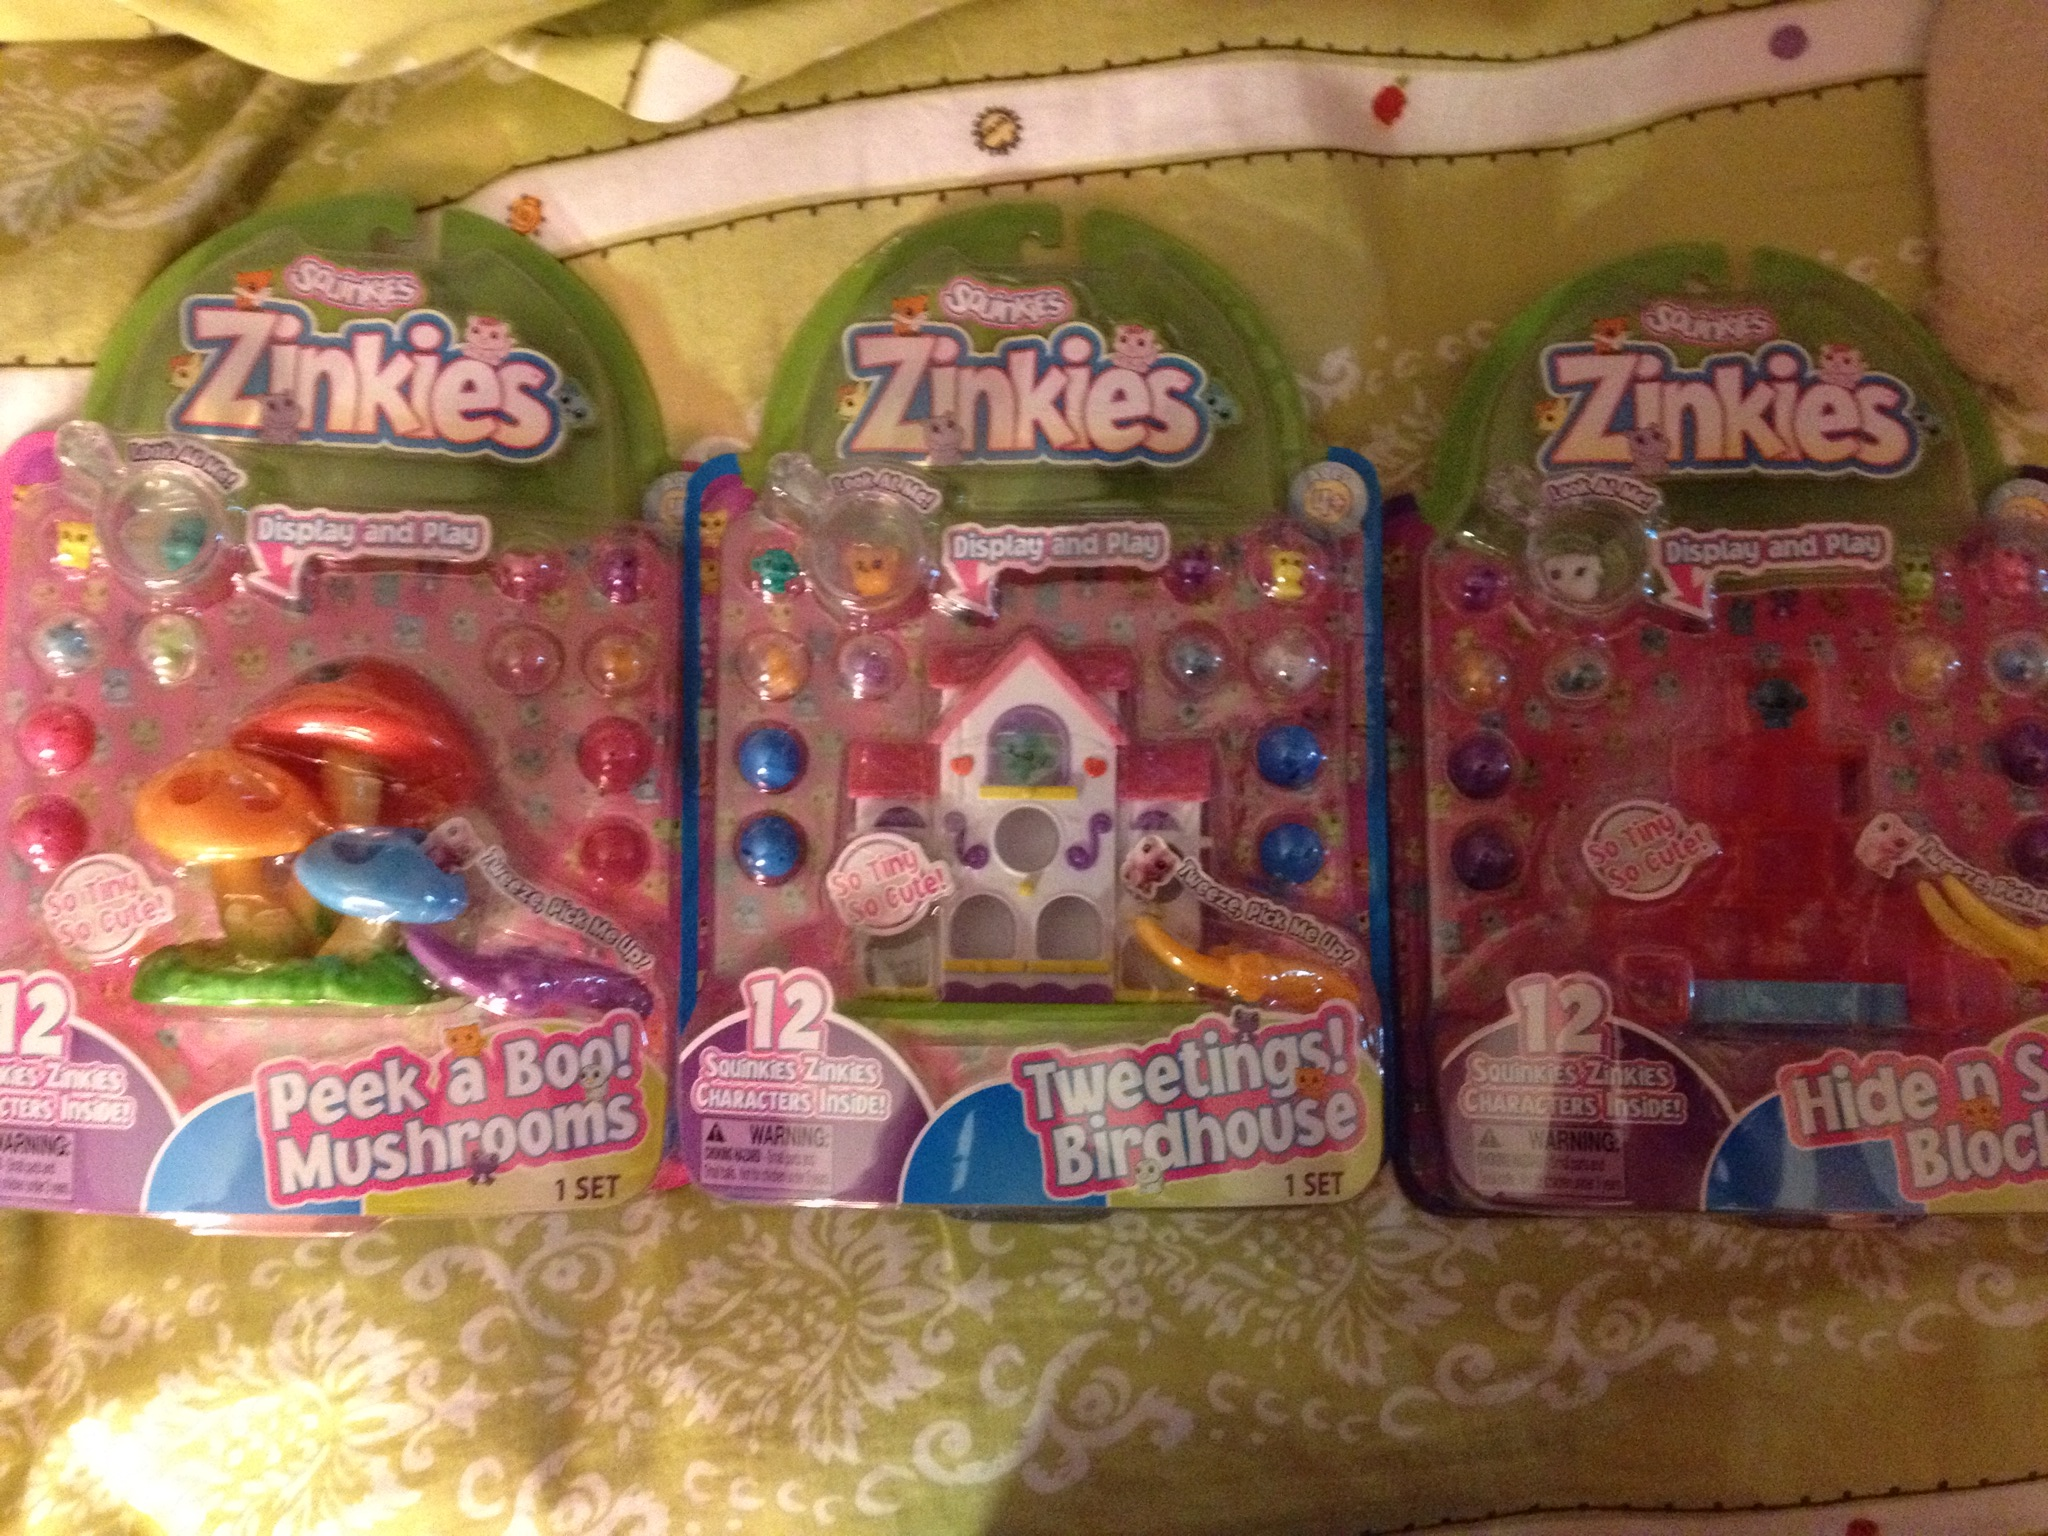 Smaller than Small: Squinkies Zinkies Review